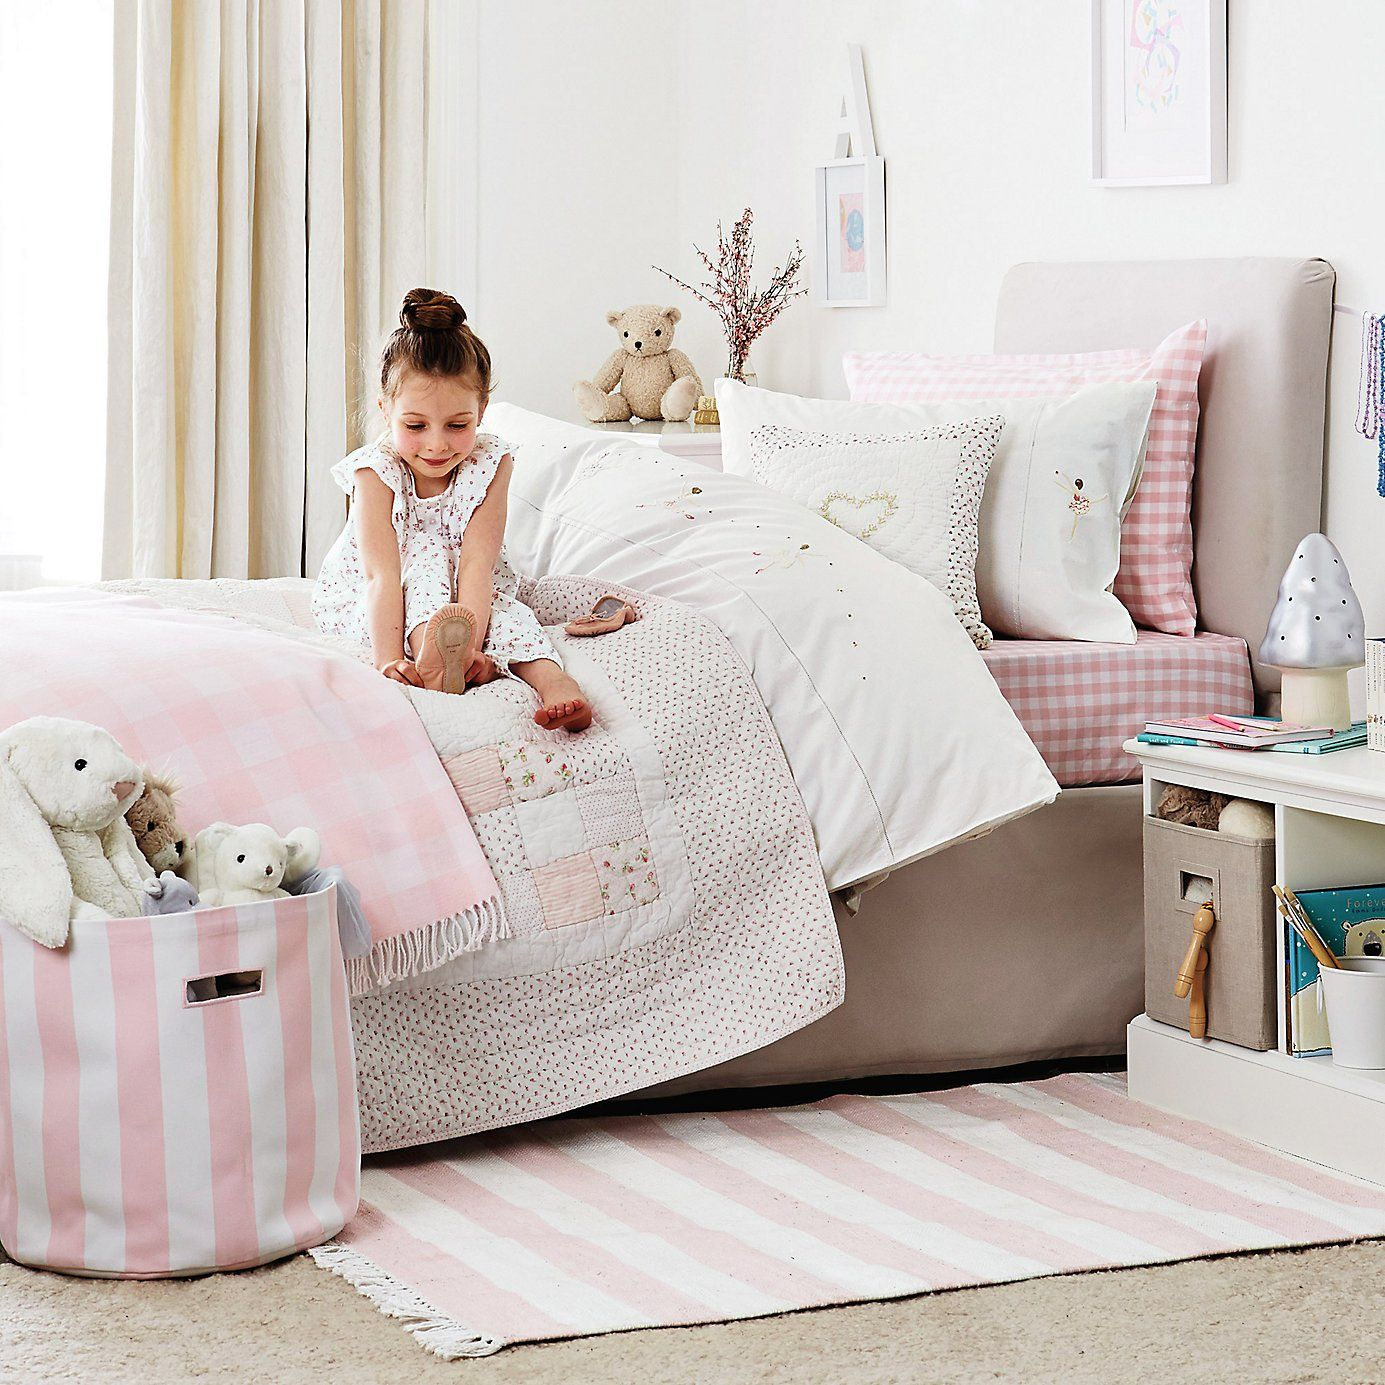 Vintage Floral Single Quilt From The White Company Childrens Bedroom Accessories The White Company Childrens Bedrooms